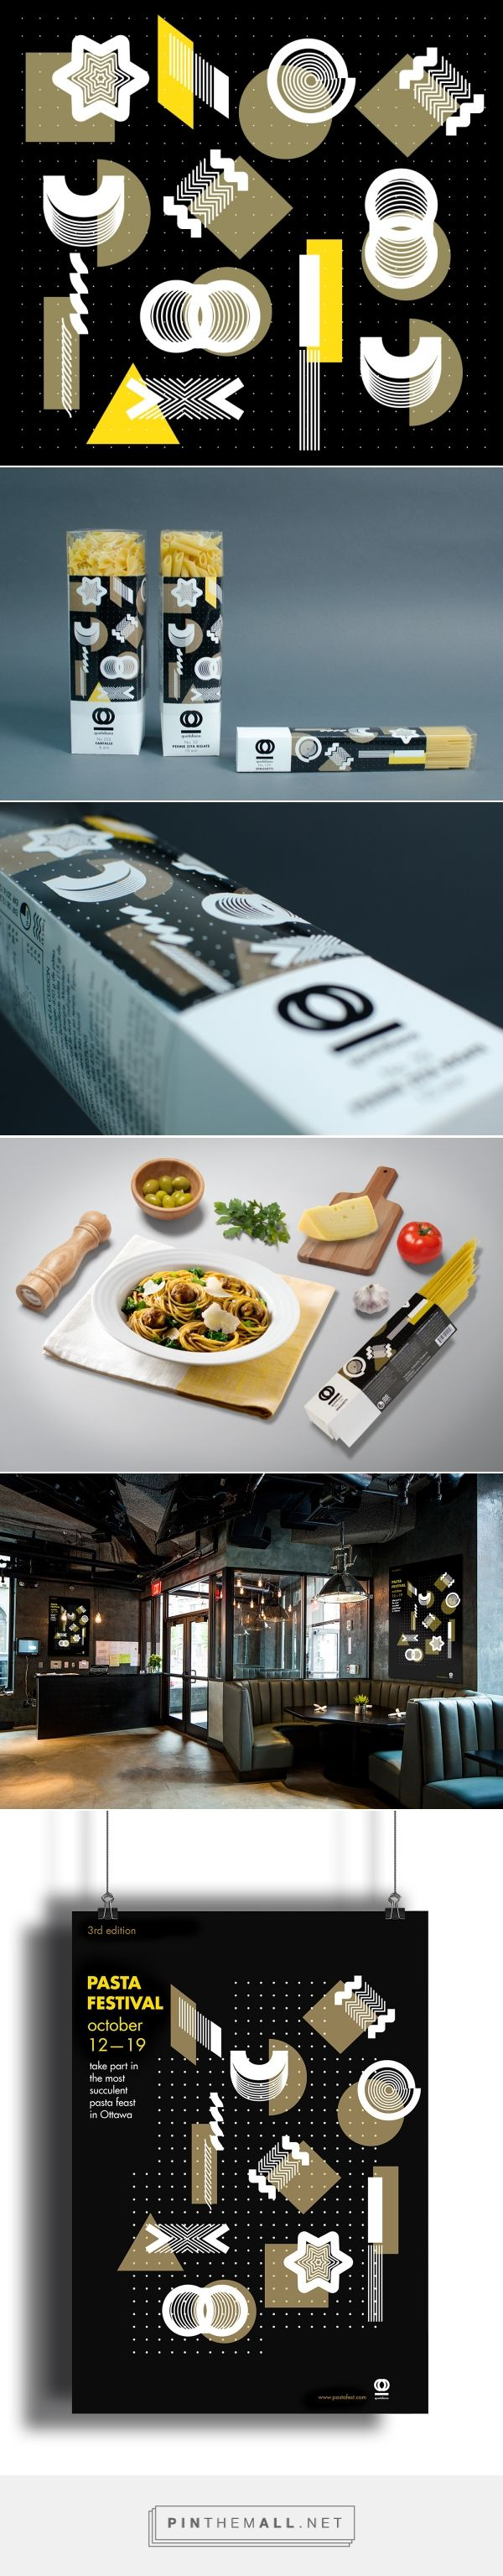 Branding, illustration and packaging for Quotidiano pasta on Behance by Yen Vy Vo Montreal, Canada curated by Packaging Diva PD. Comes with one extra flap contents recipes for its pasta. Packaging is in 3 languages: French, English and Italian.